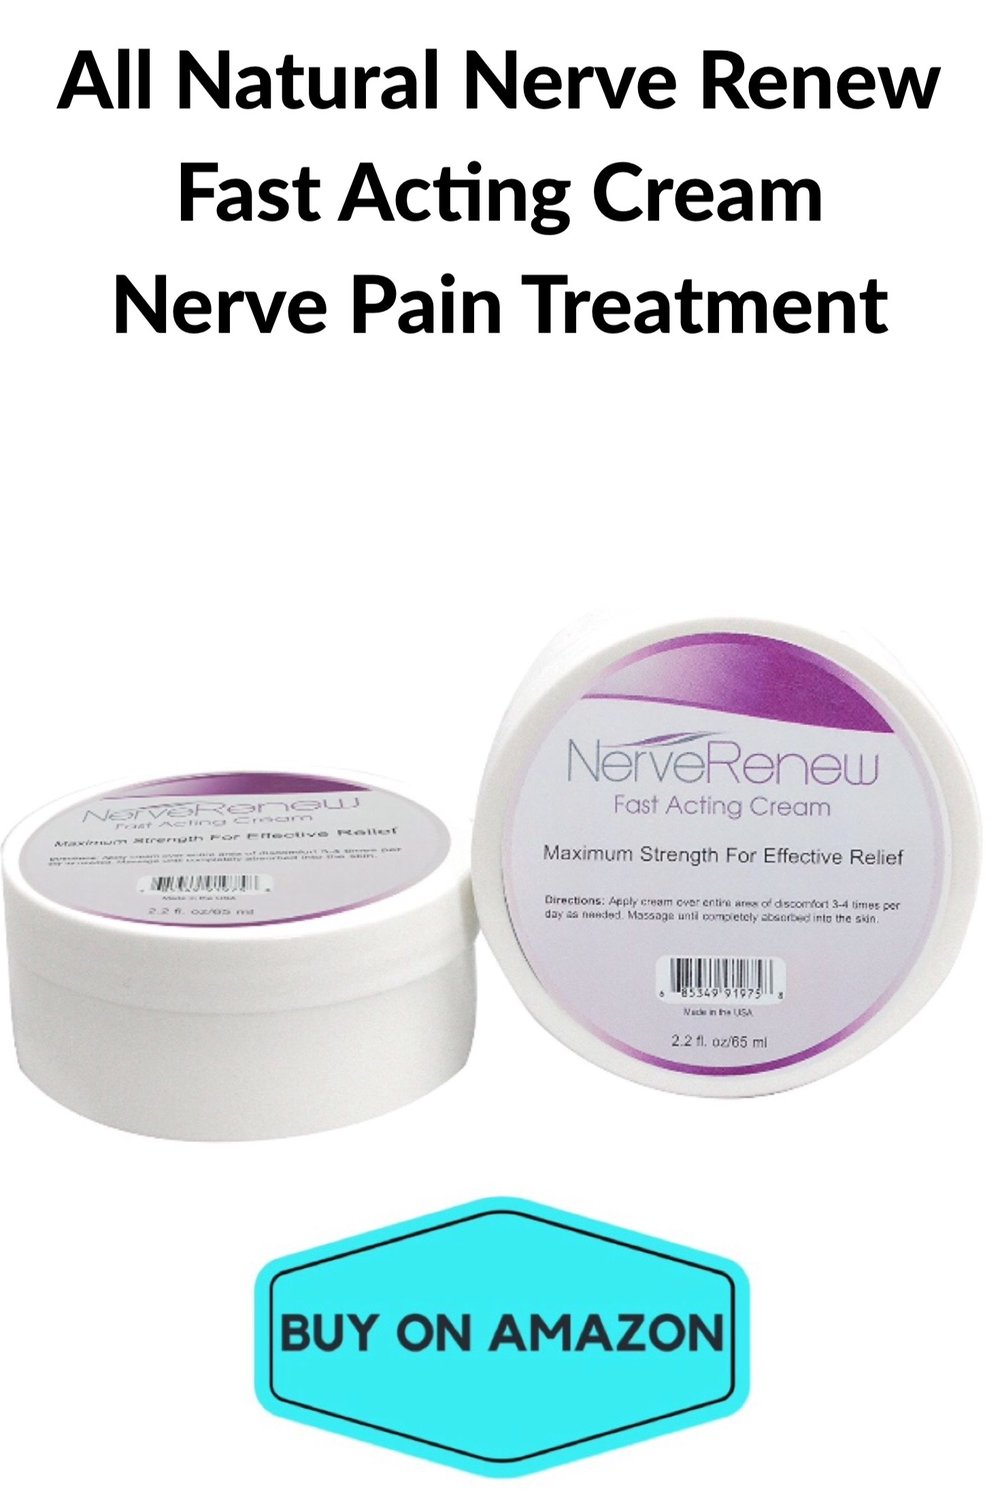 Fast Acting Cream Nerve Pain Treatment